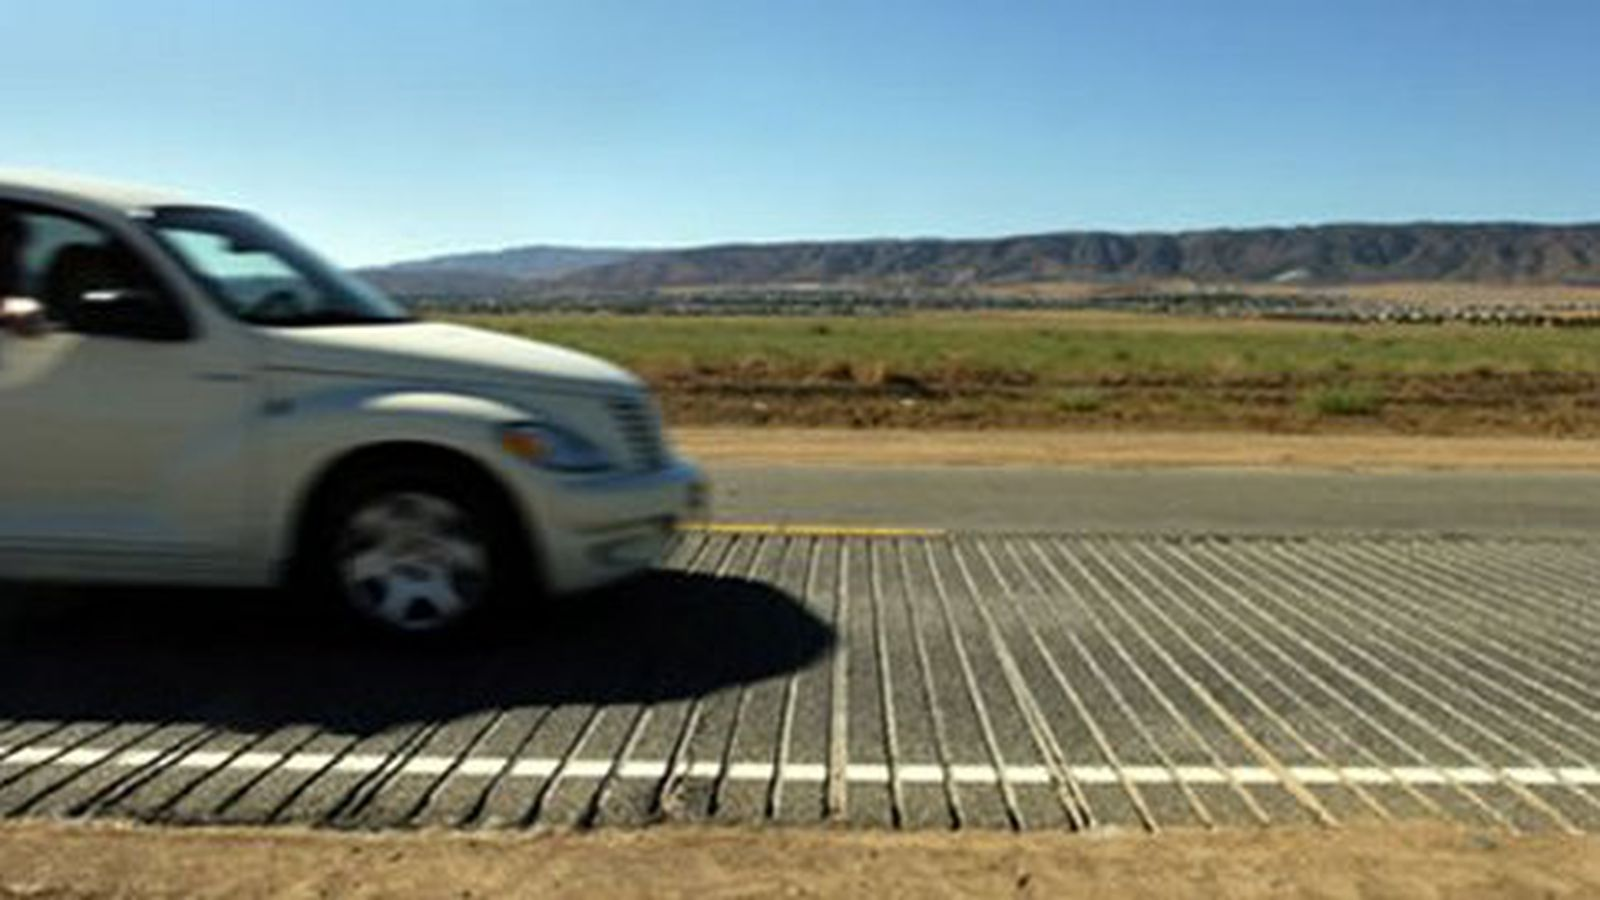 Cars For Sale Los Angeles >> Hungary's 'musical road' will sing to drivers going at the right speed - Curbed